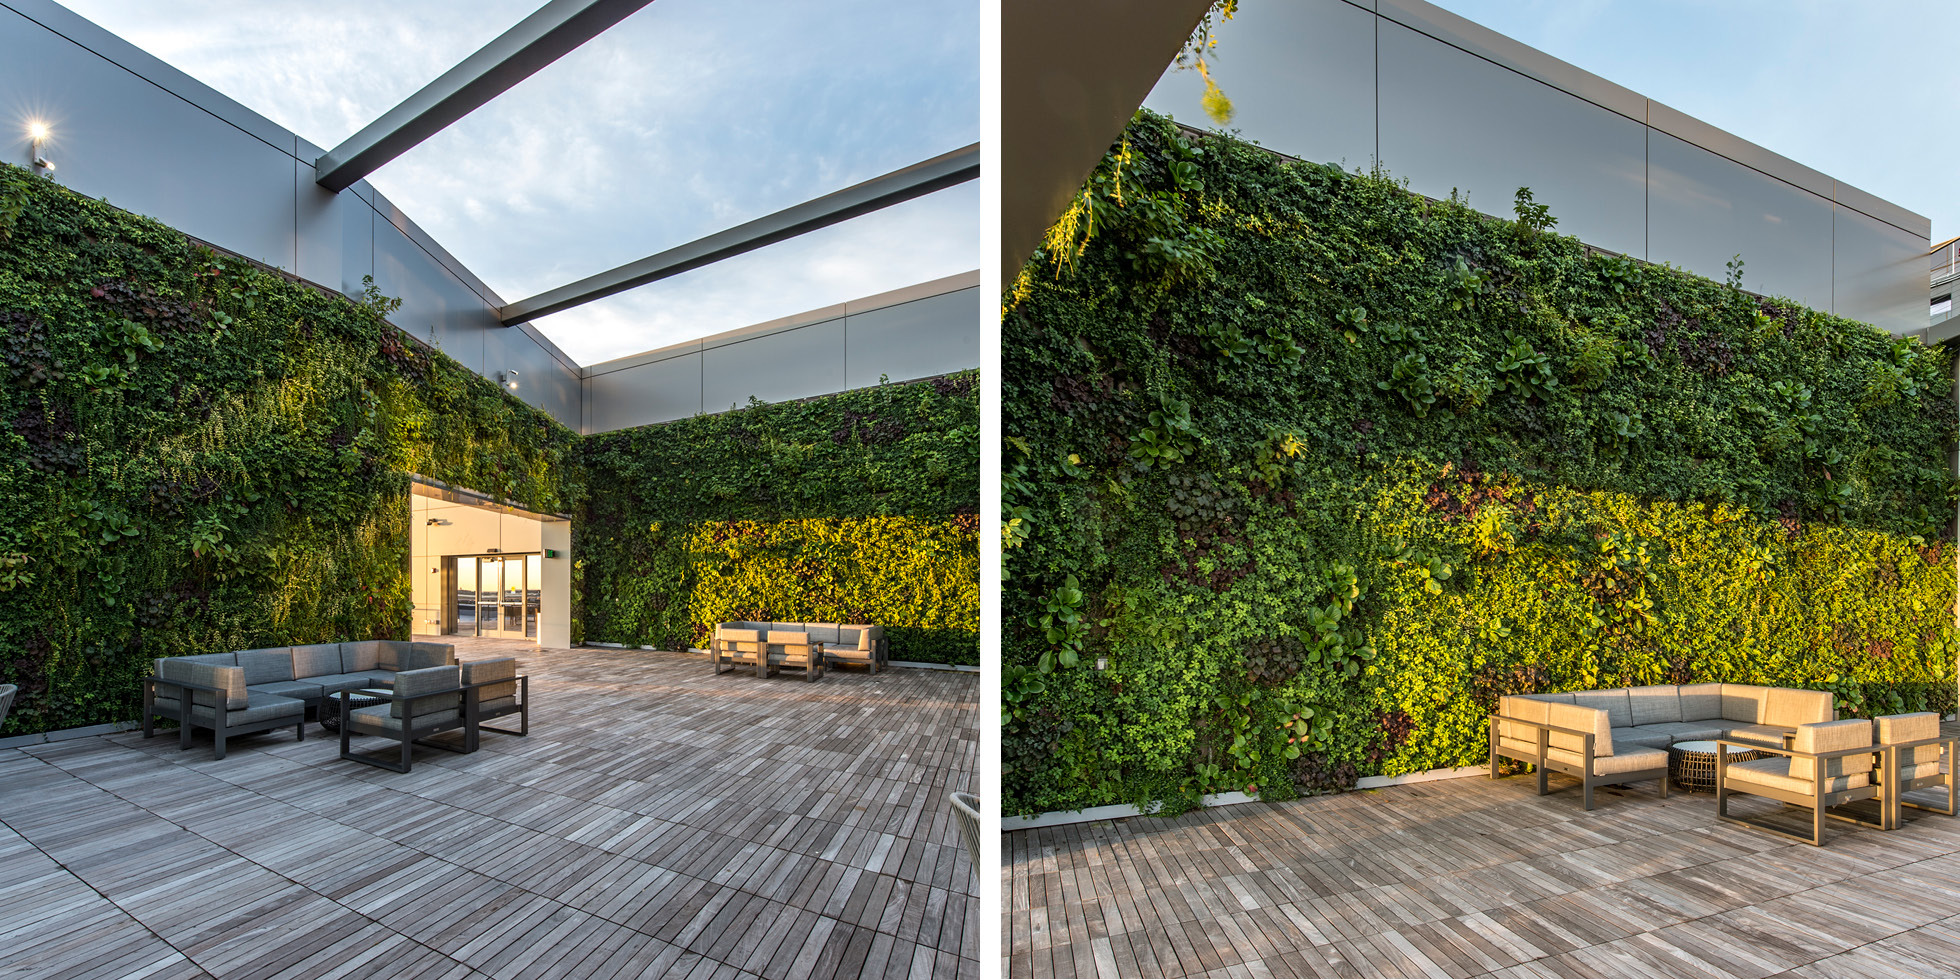 Boston Pier 4 Living Wall by Habitat Horticulture - View 2